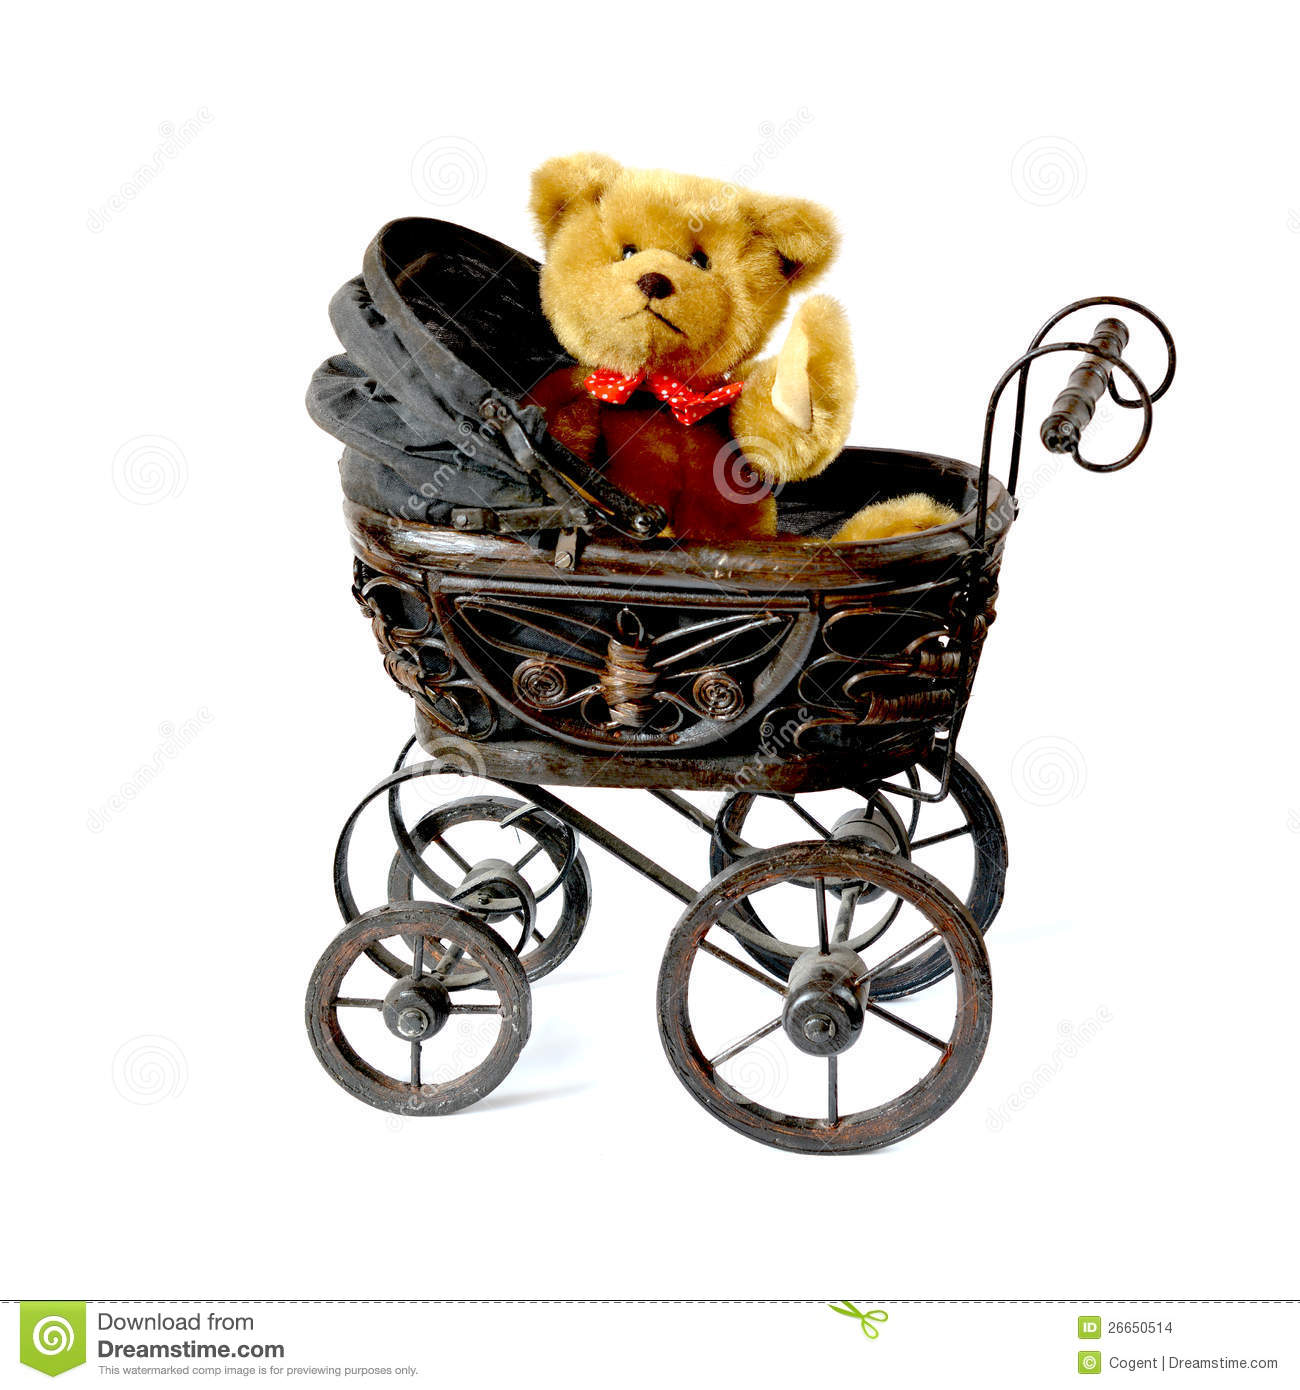 Waving Teddy Bear In Vintage Pram Stock Photo Image Of Baby Cute